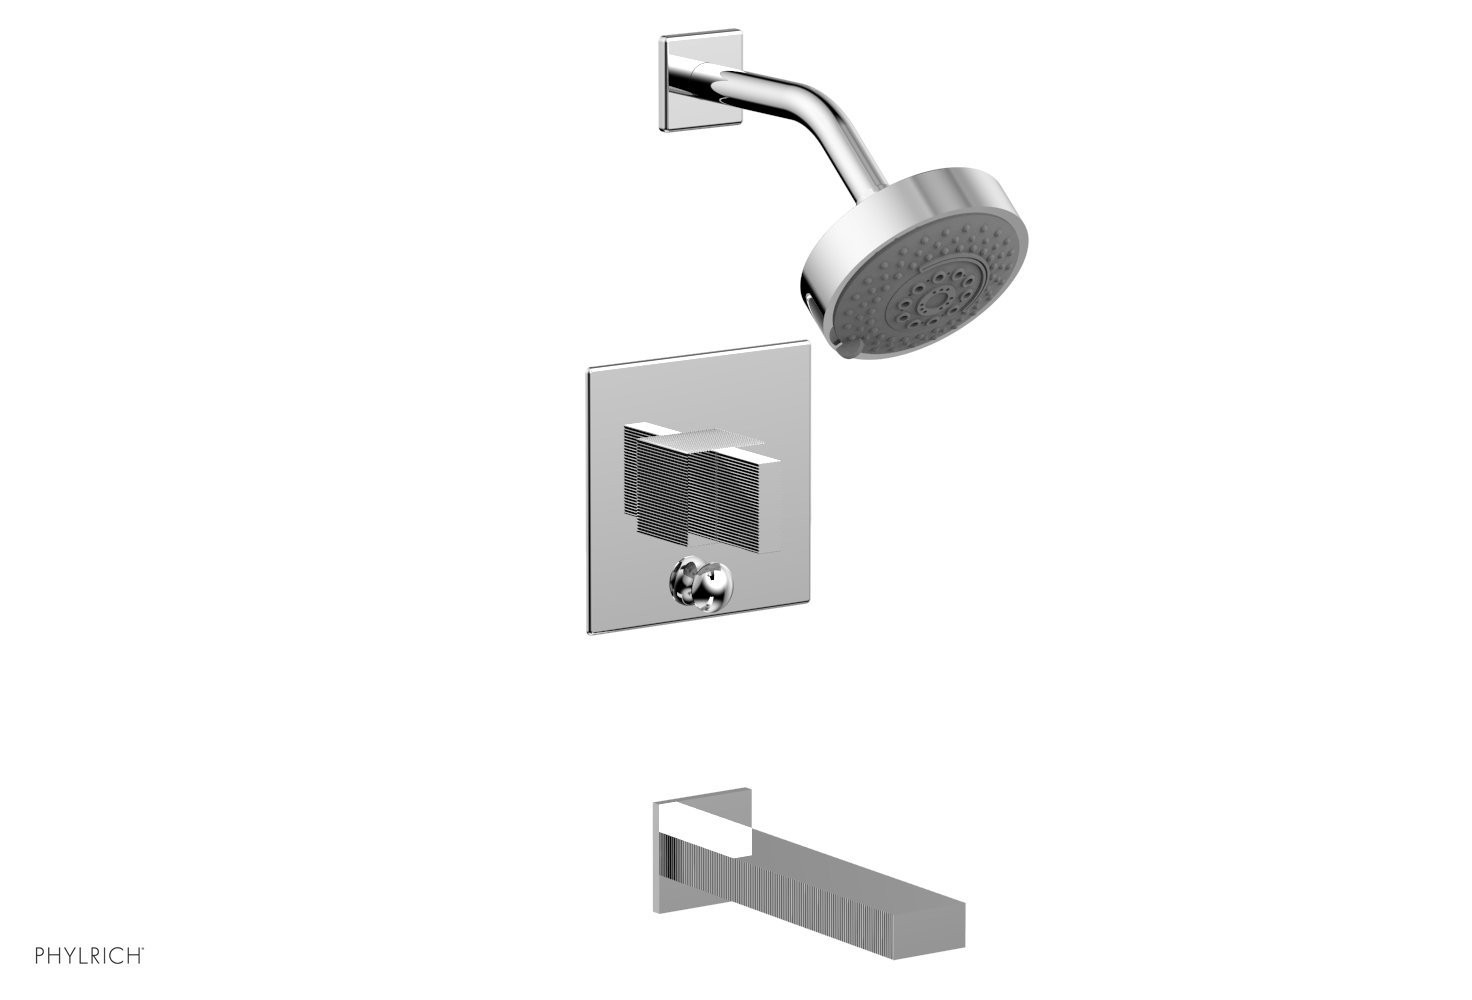 PHYLRICH 291-26 STRIA WALL MOUNT PRESSURE BALANCE TUB AND SHOWER SET WITH BLADE HANDLE